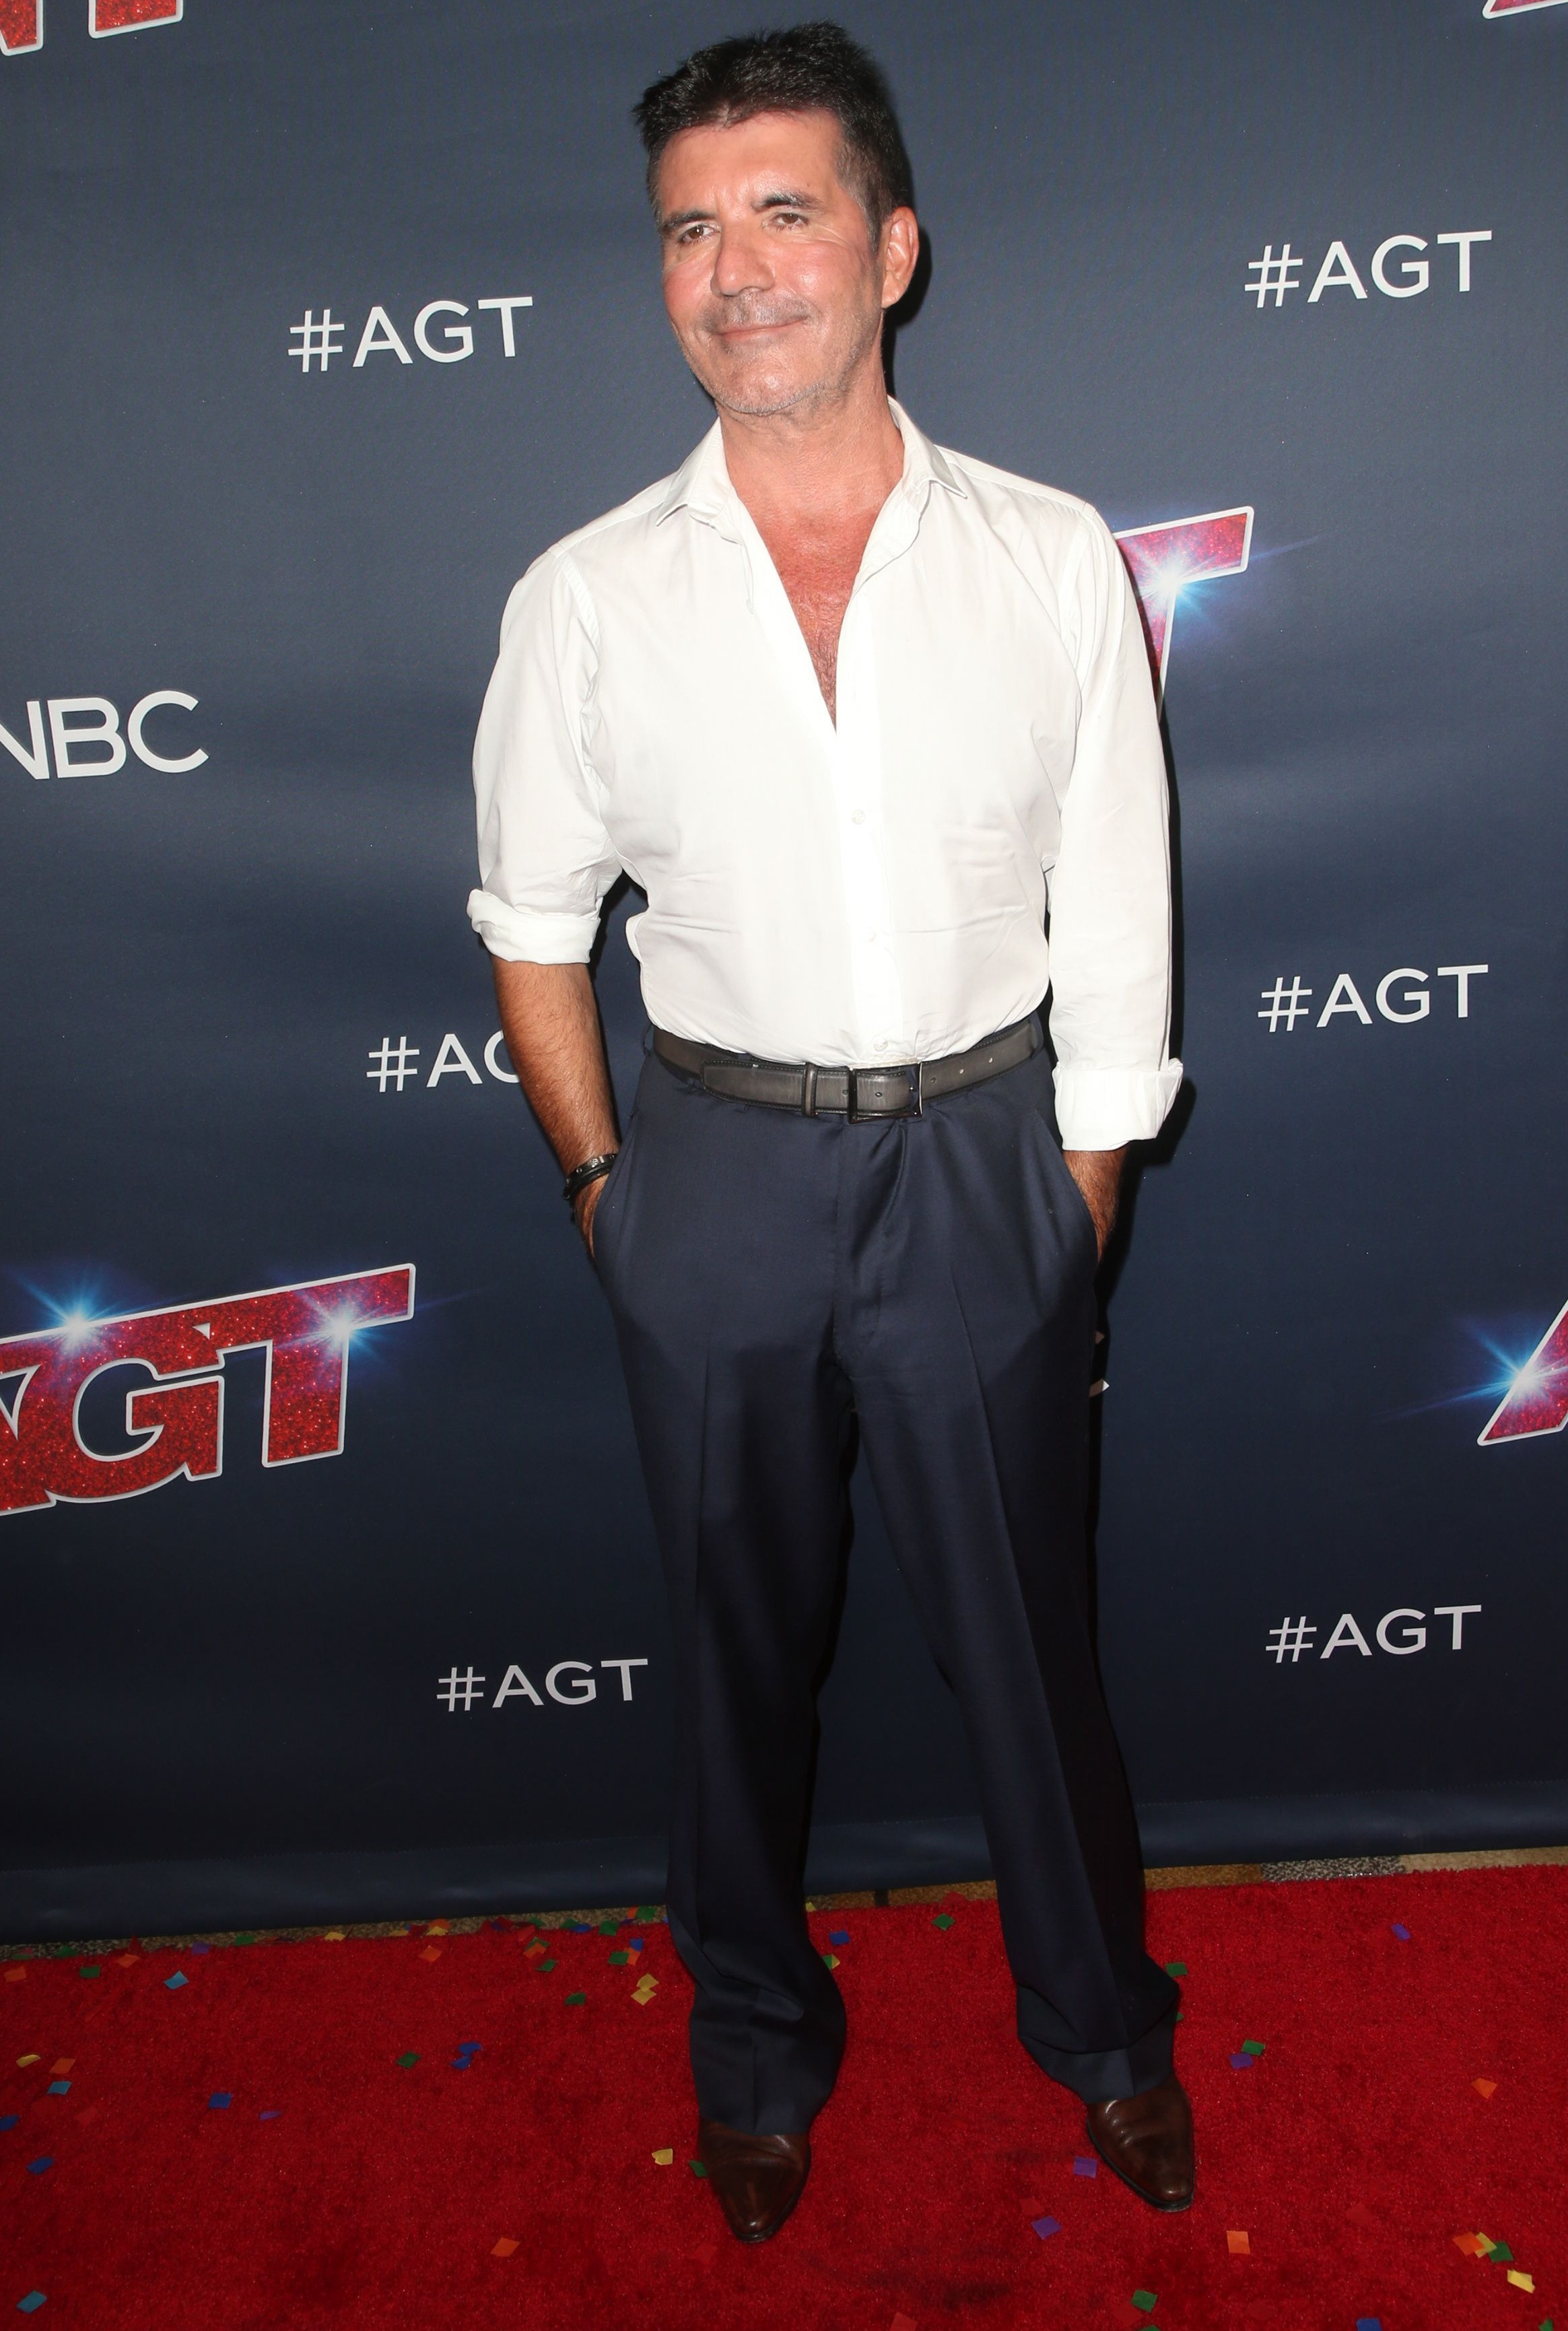 Simon Cowell was 'nearly paralysed and is lucky to be recovering at all' after 'life changing' bike accident